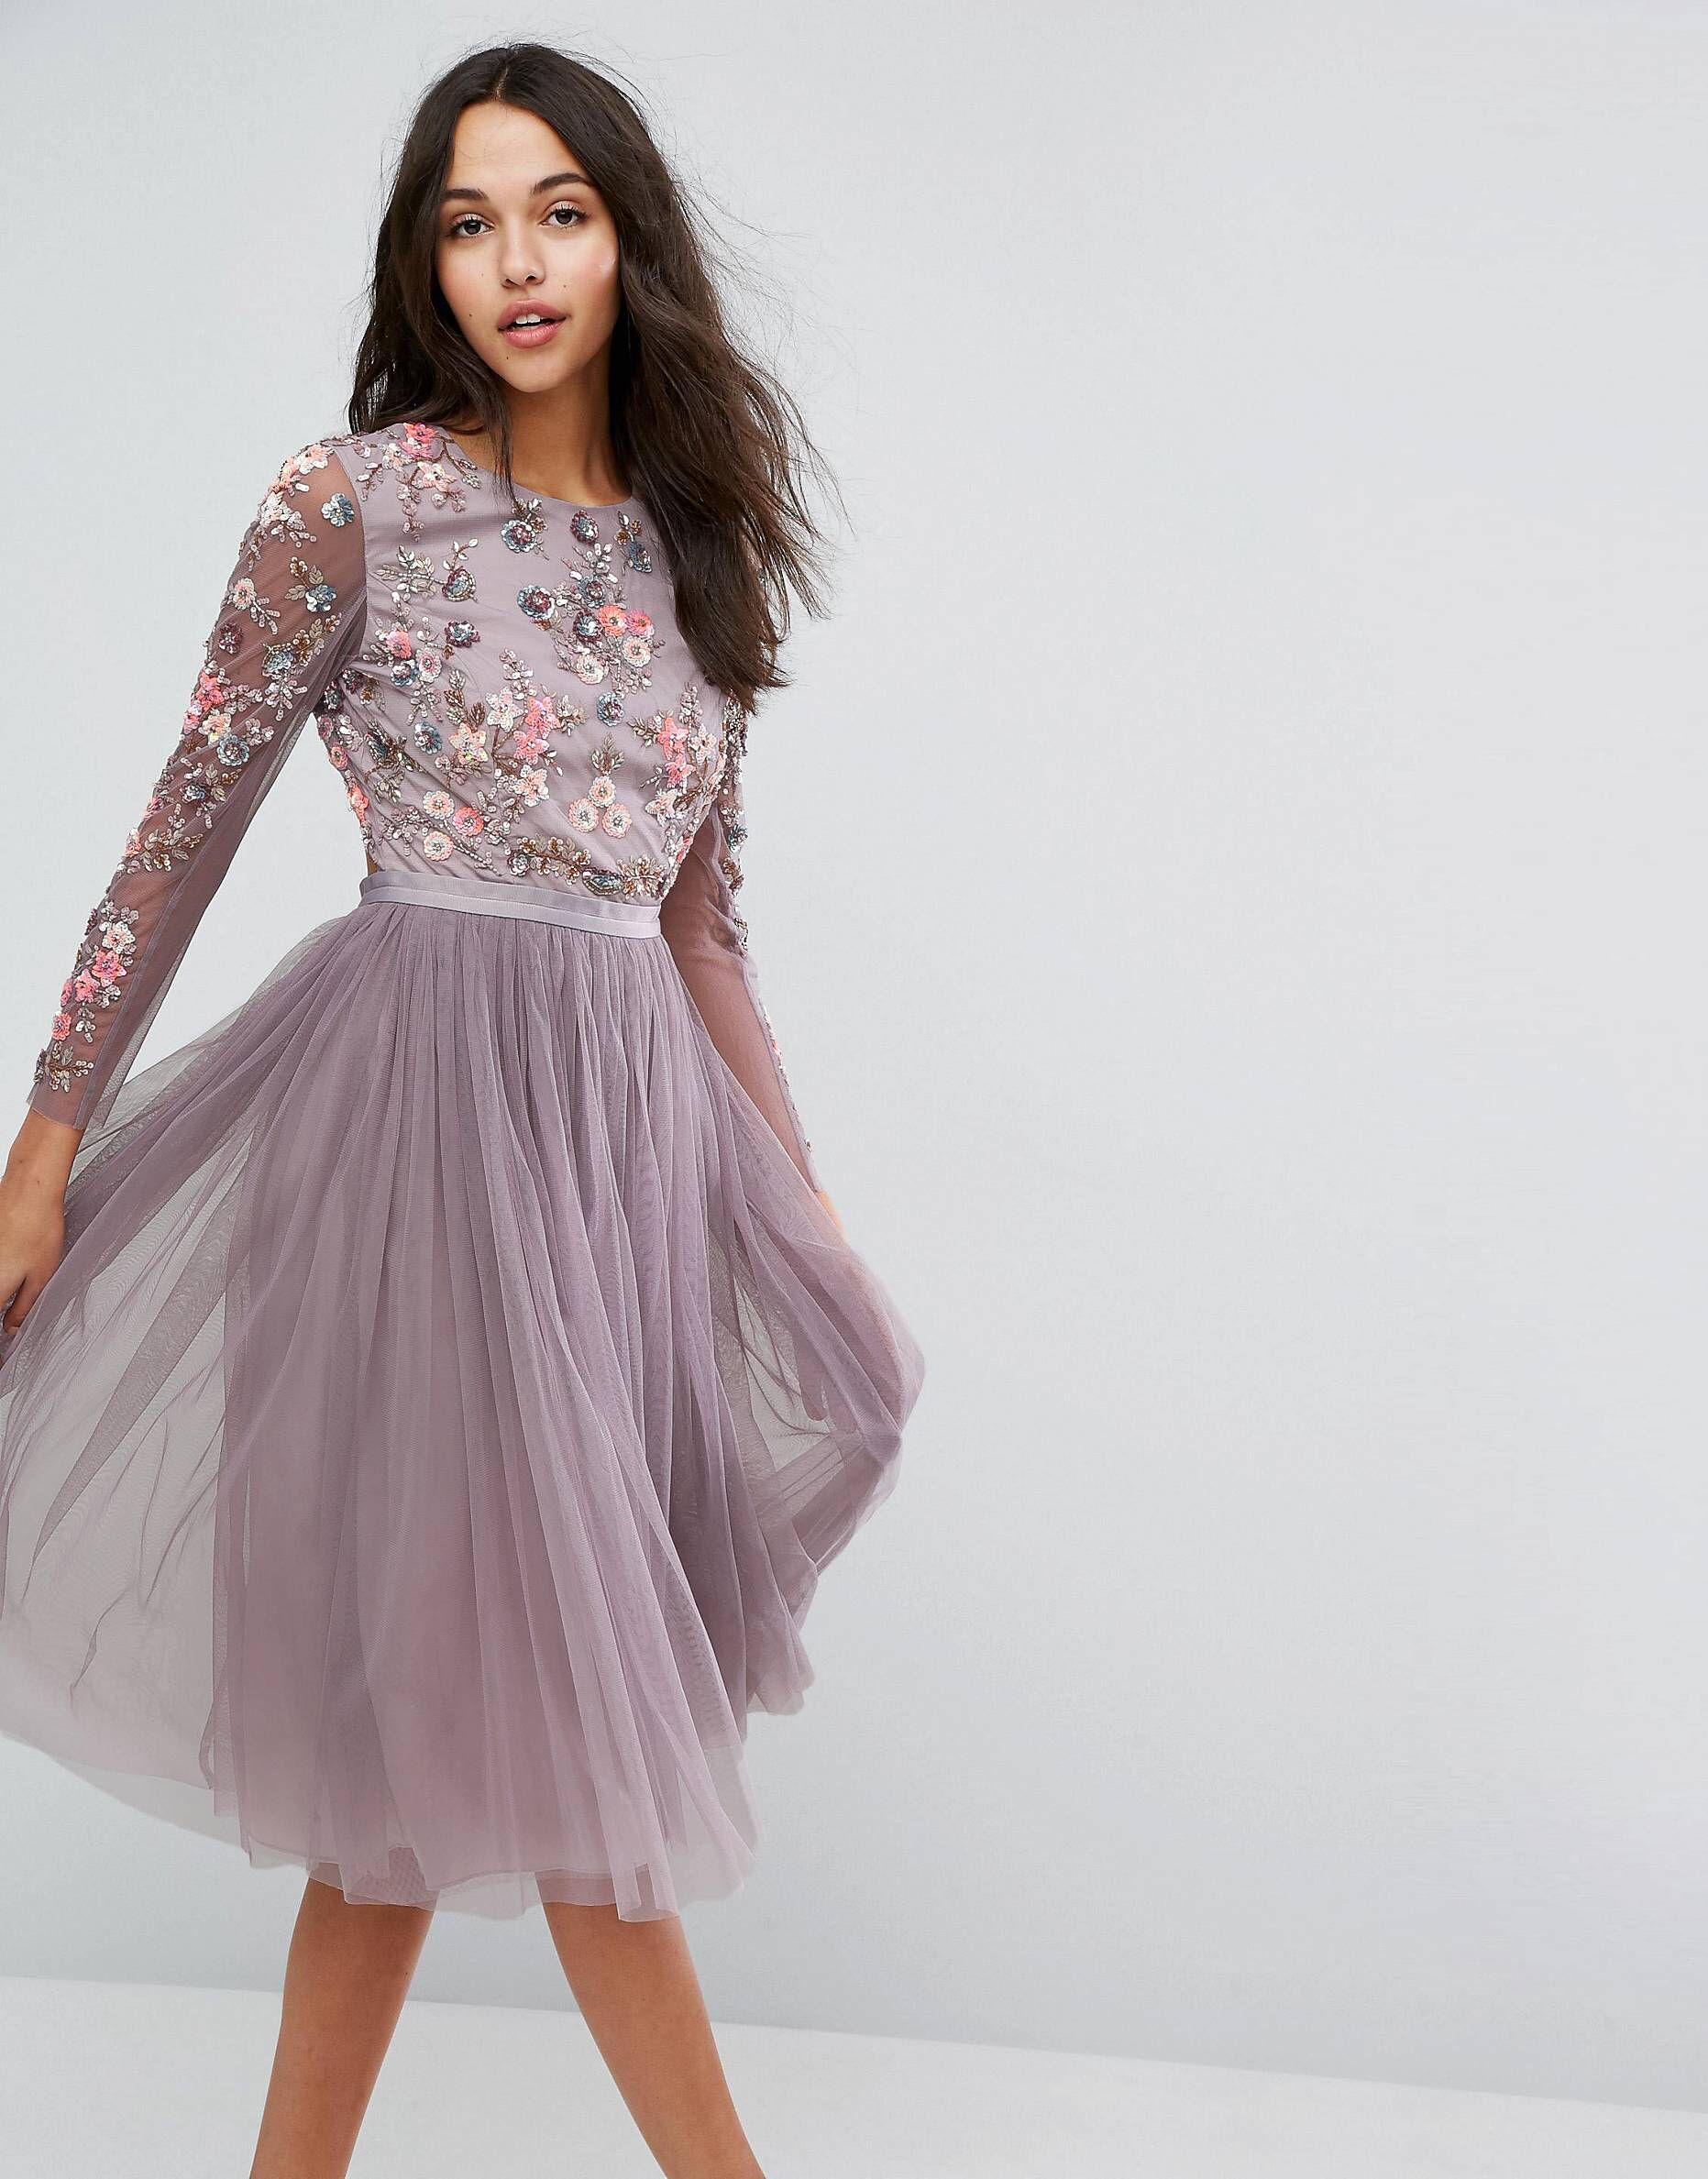 LOVE this from ASOS!  fb4a4bef2b362